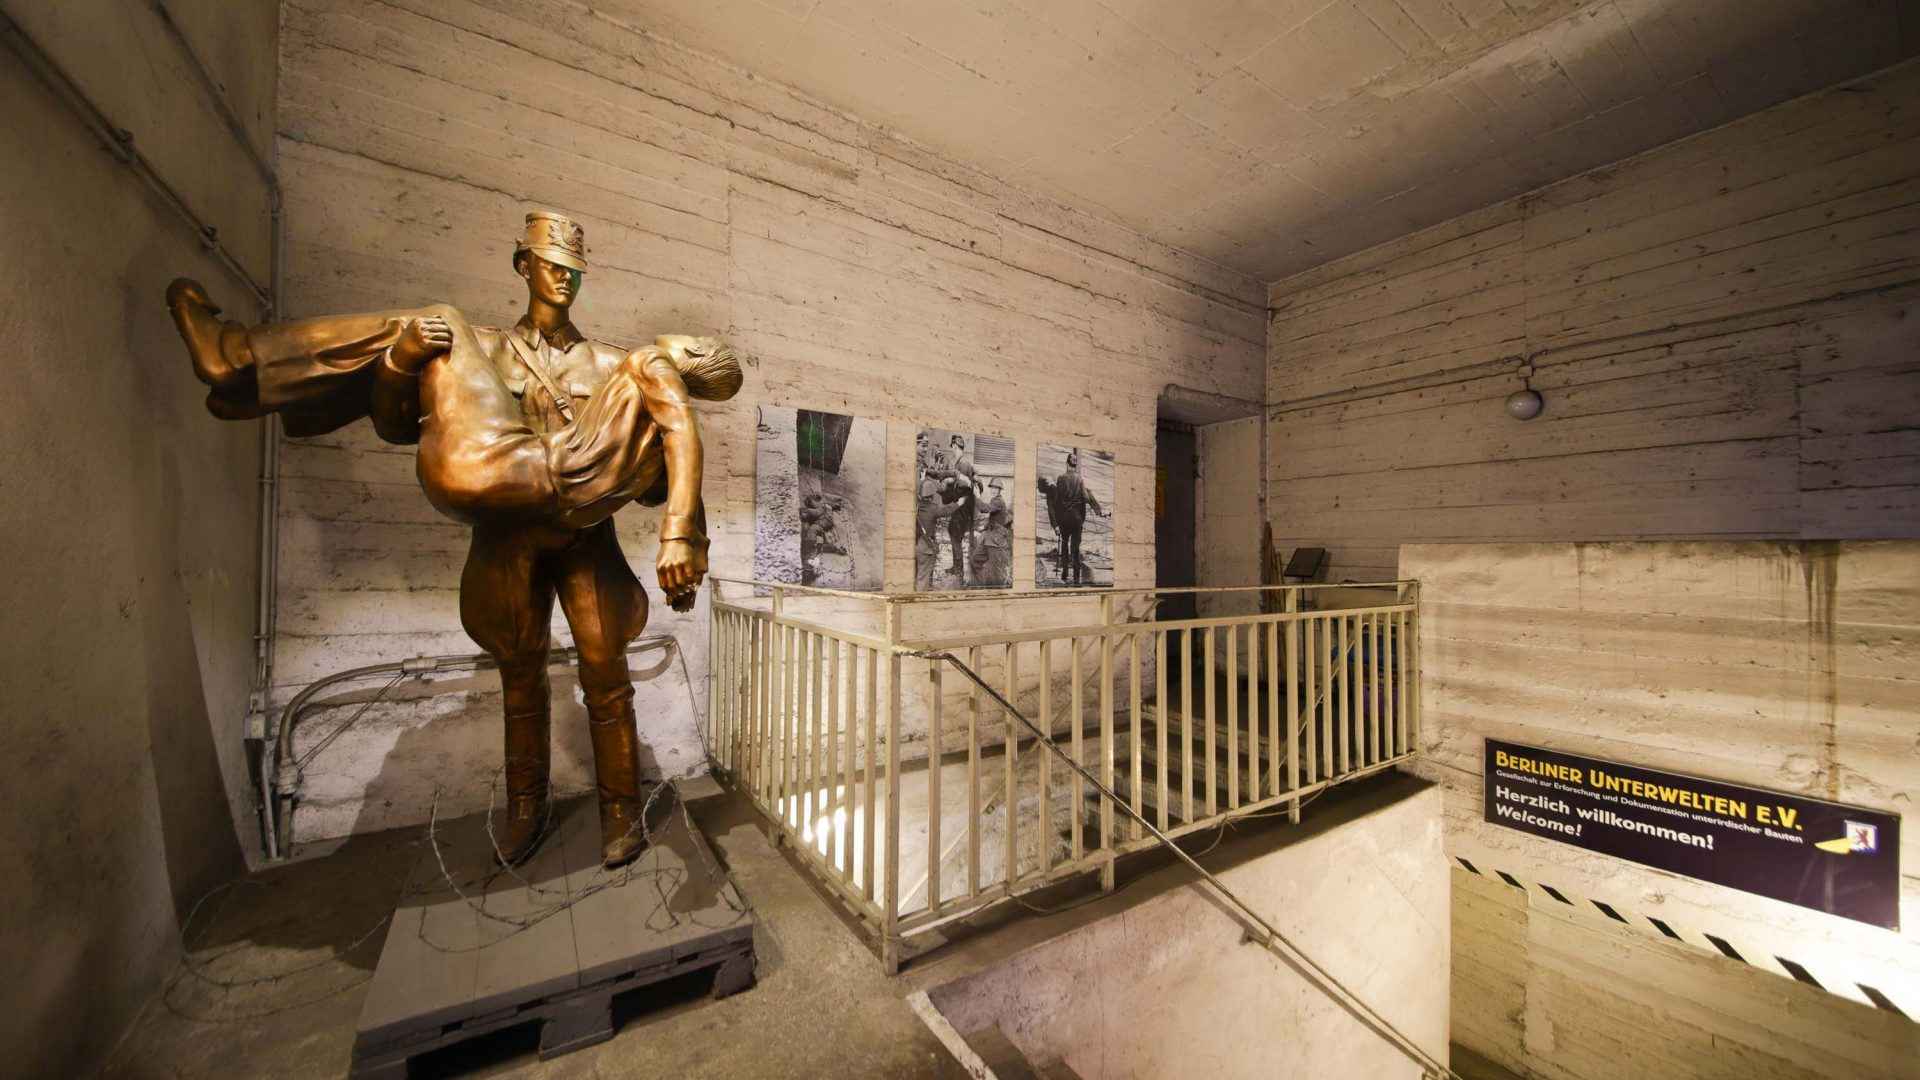 Today, visitors can take underground tours to see the the tunnels and hear tales of escape from East Berlin.